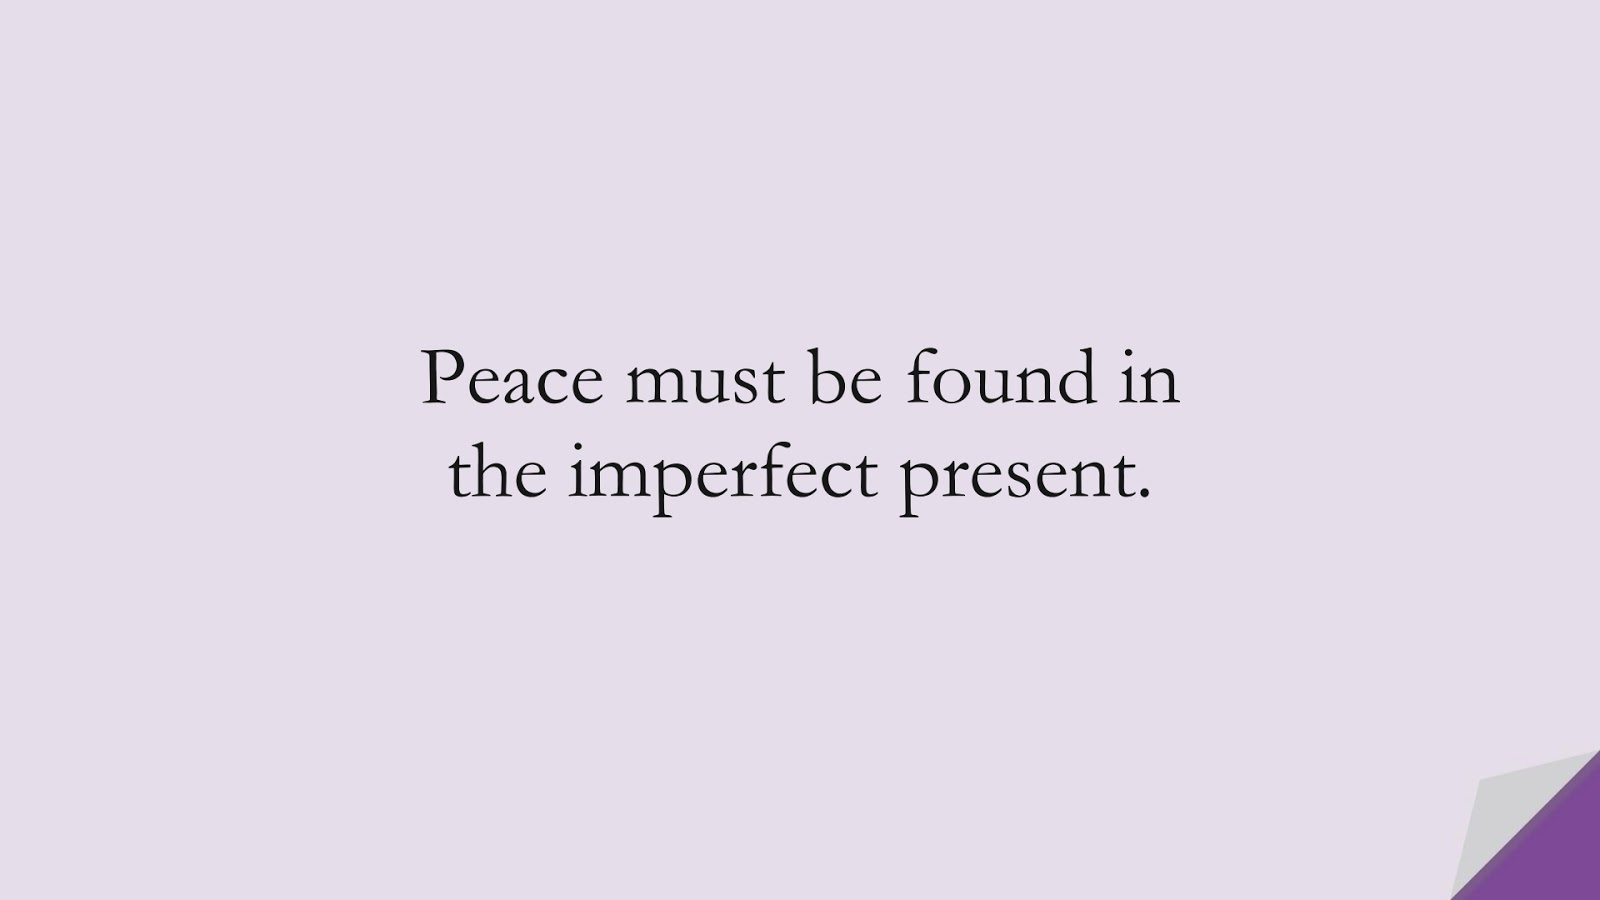 Peace must be found in the imperfect present.FALSE